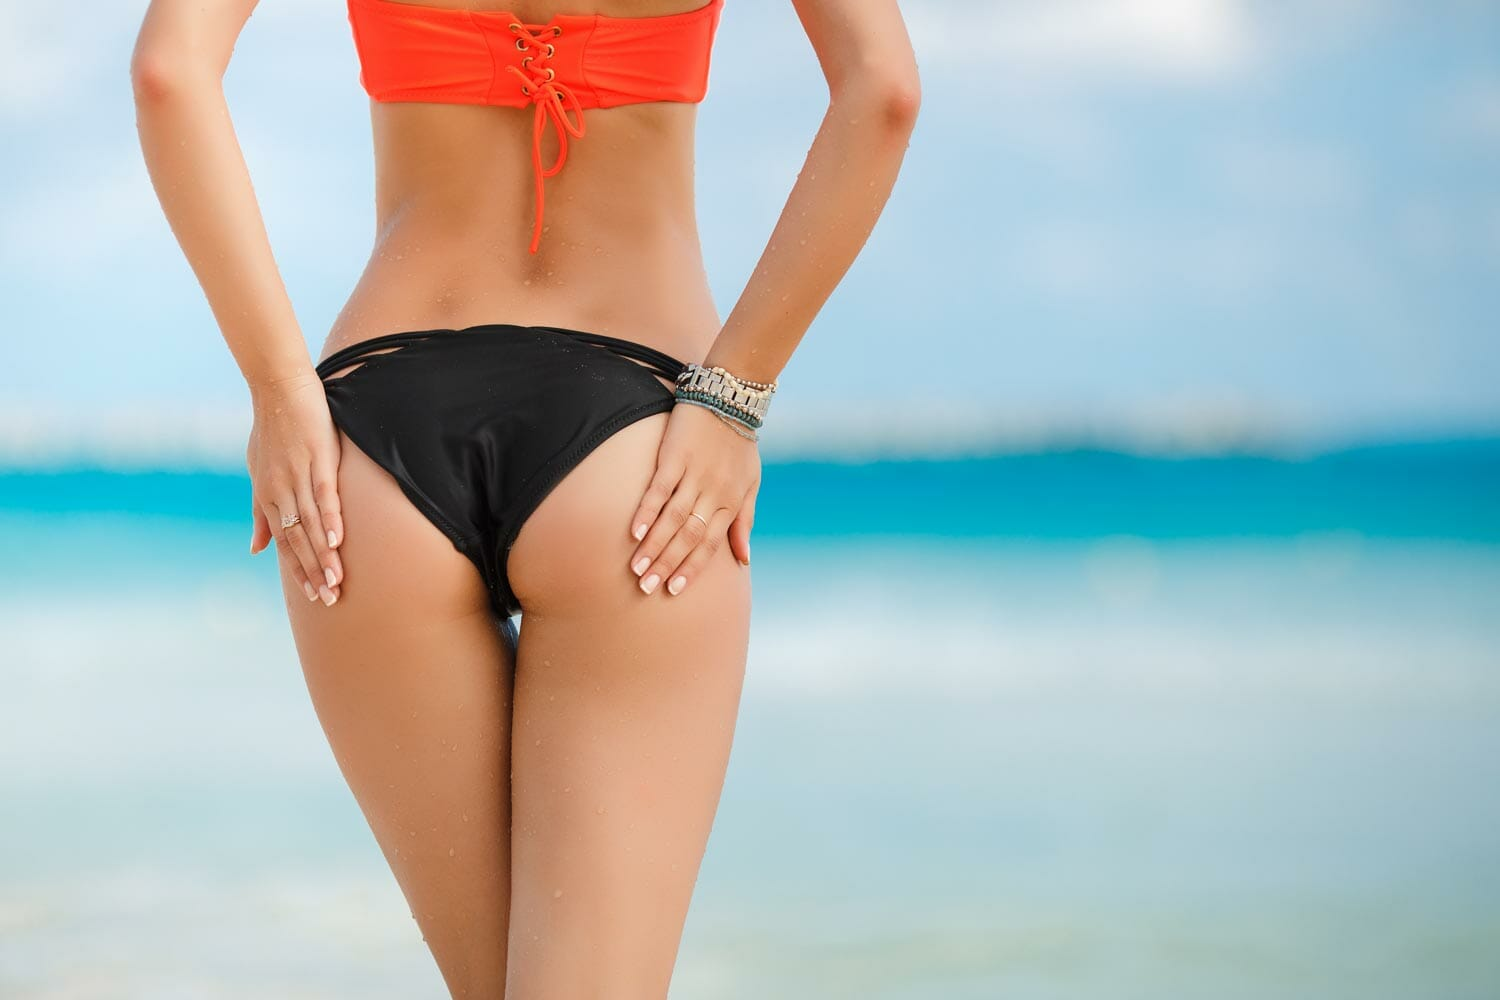 Get Your New Year Figure With The Help Of Liposuction